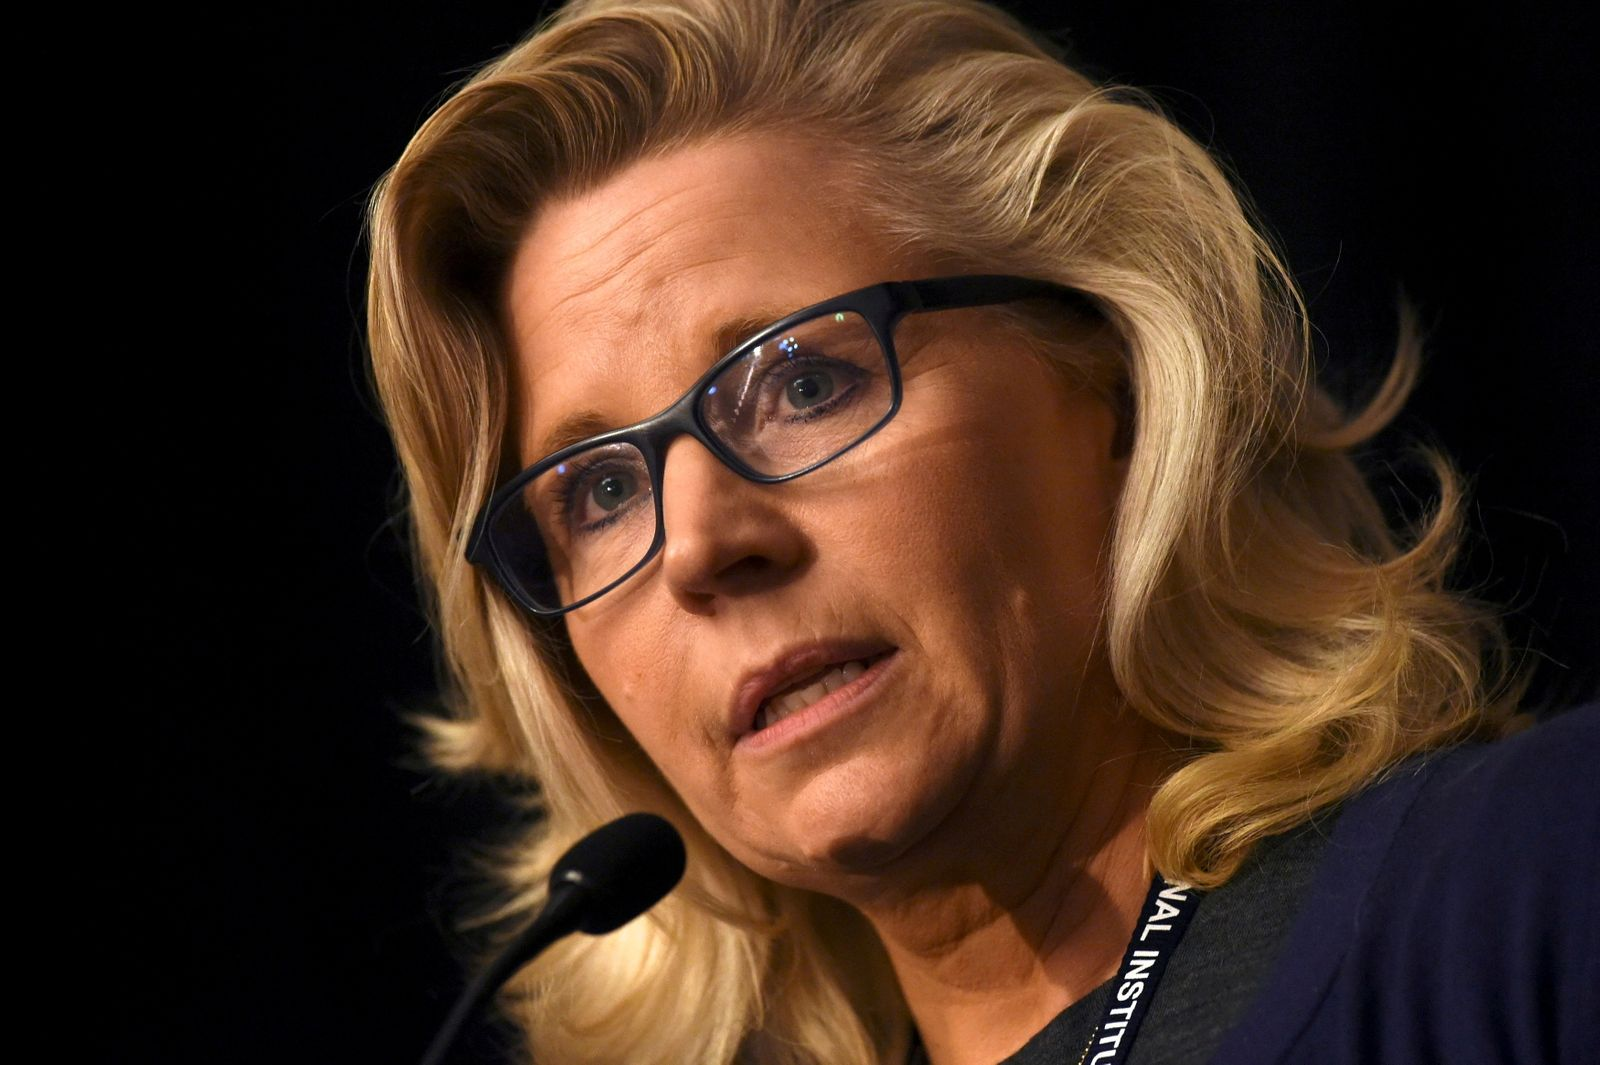 """FILE PHOTO: U.S. Representative Liz Cheney addresses the media during the 2017 """"Congress of Tomorrow"""" Joint Republican Issues Conference in Philadelphia, Pennsylvania"""